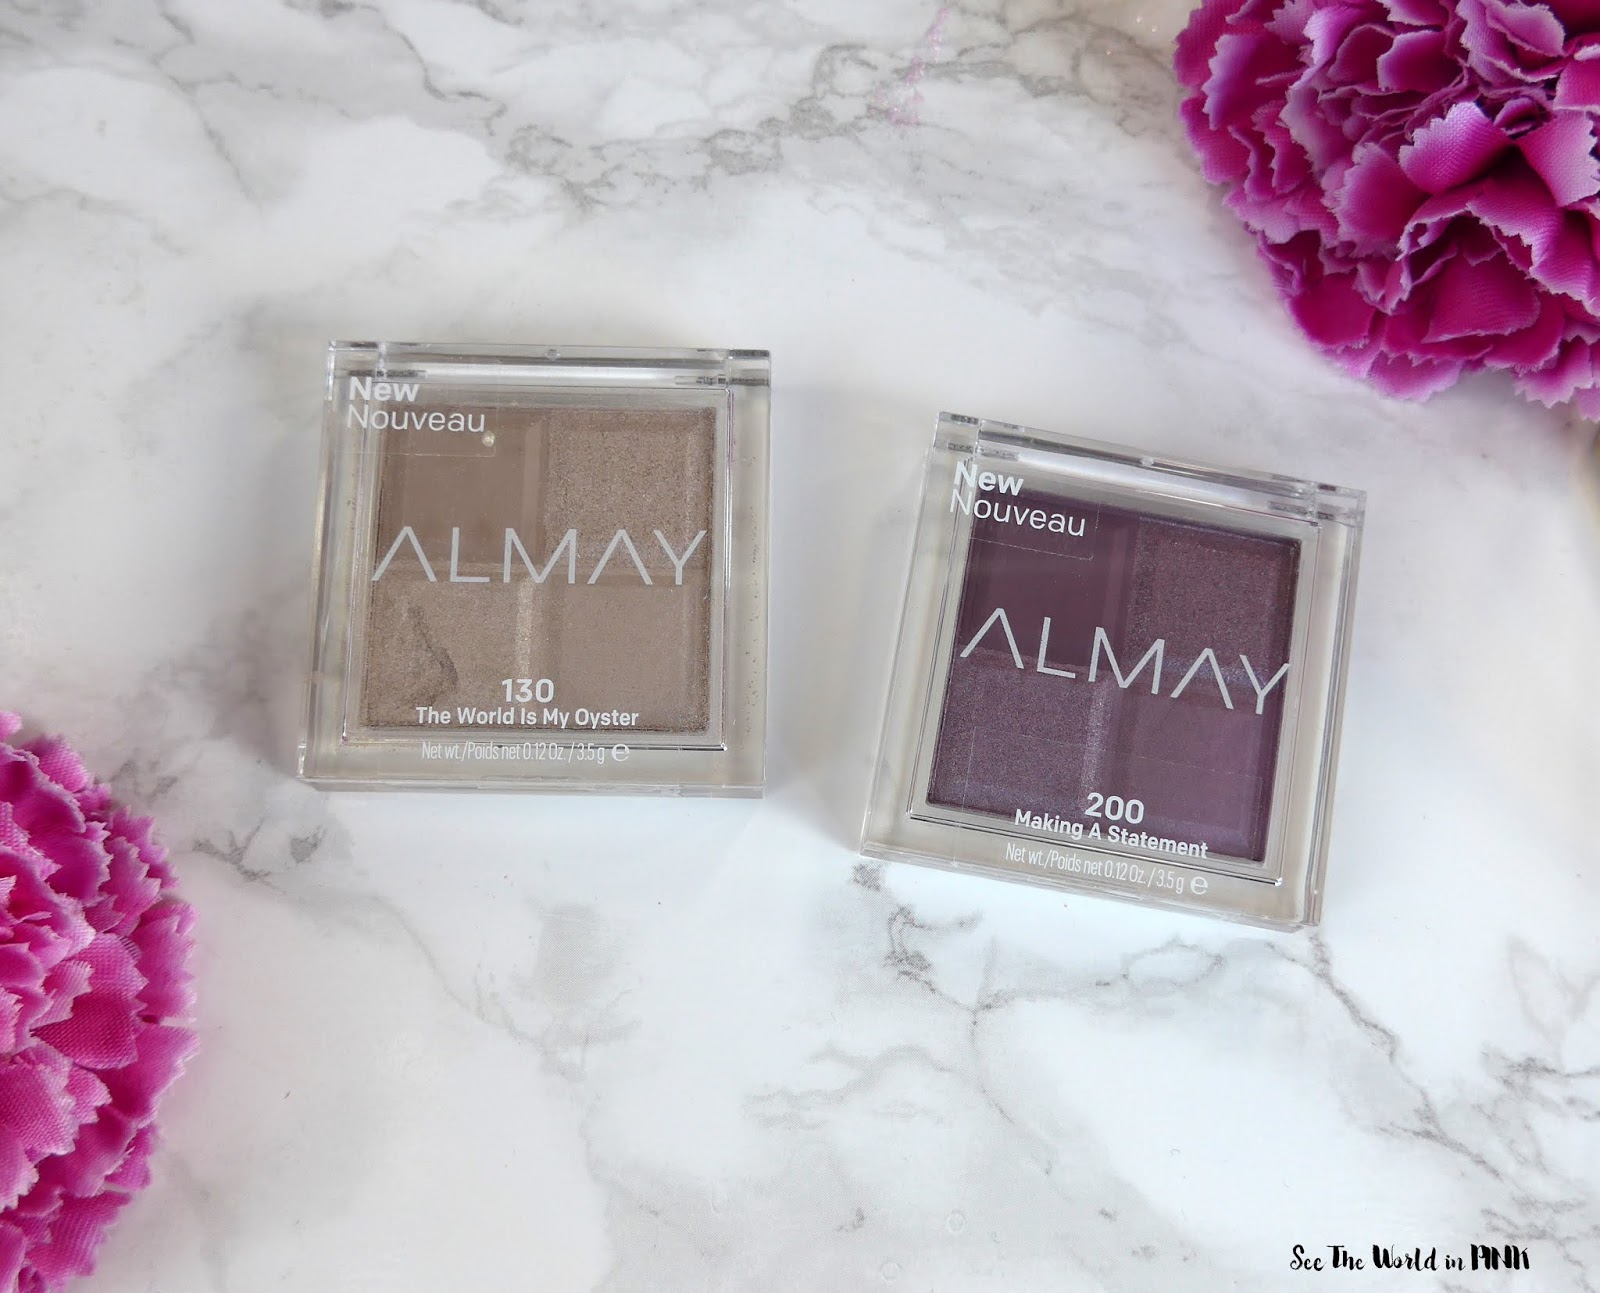 Shimmery Almay Spring Products - Shadow Squad